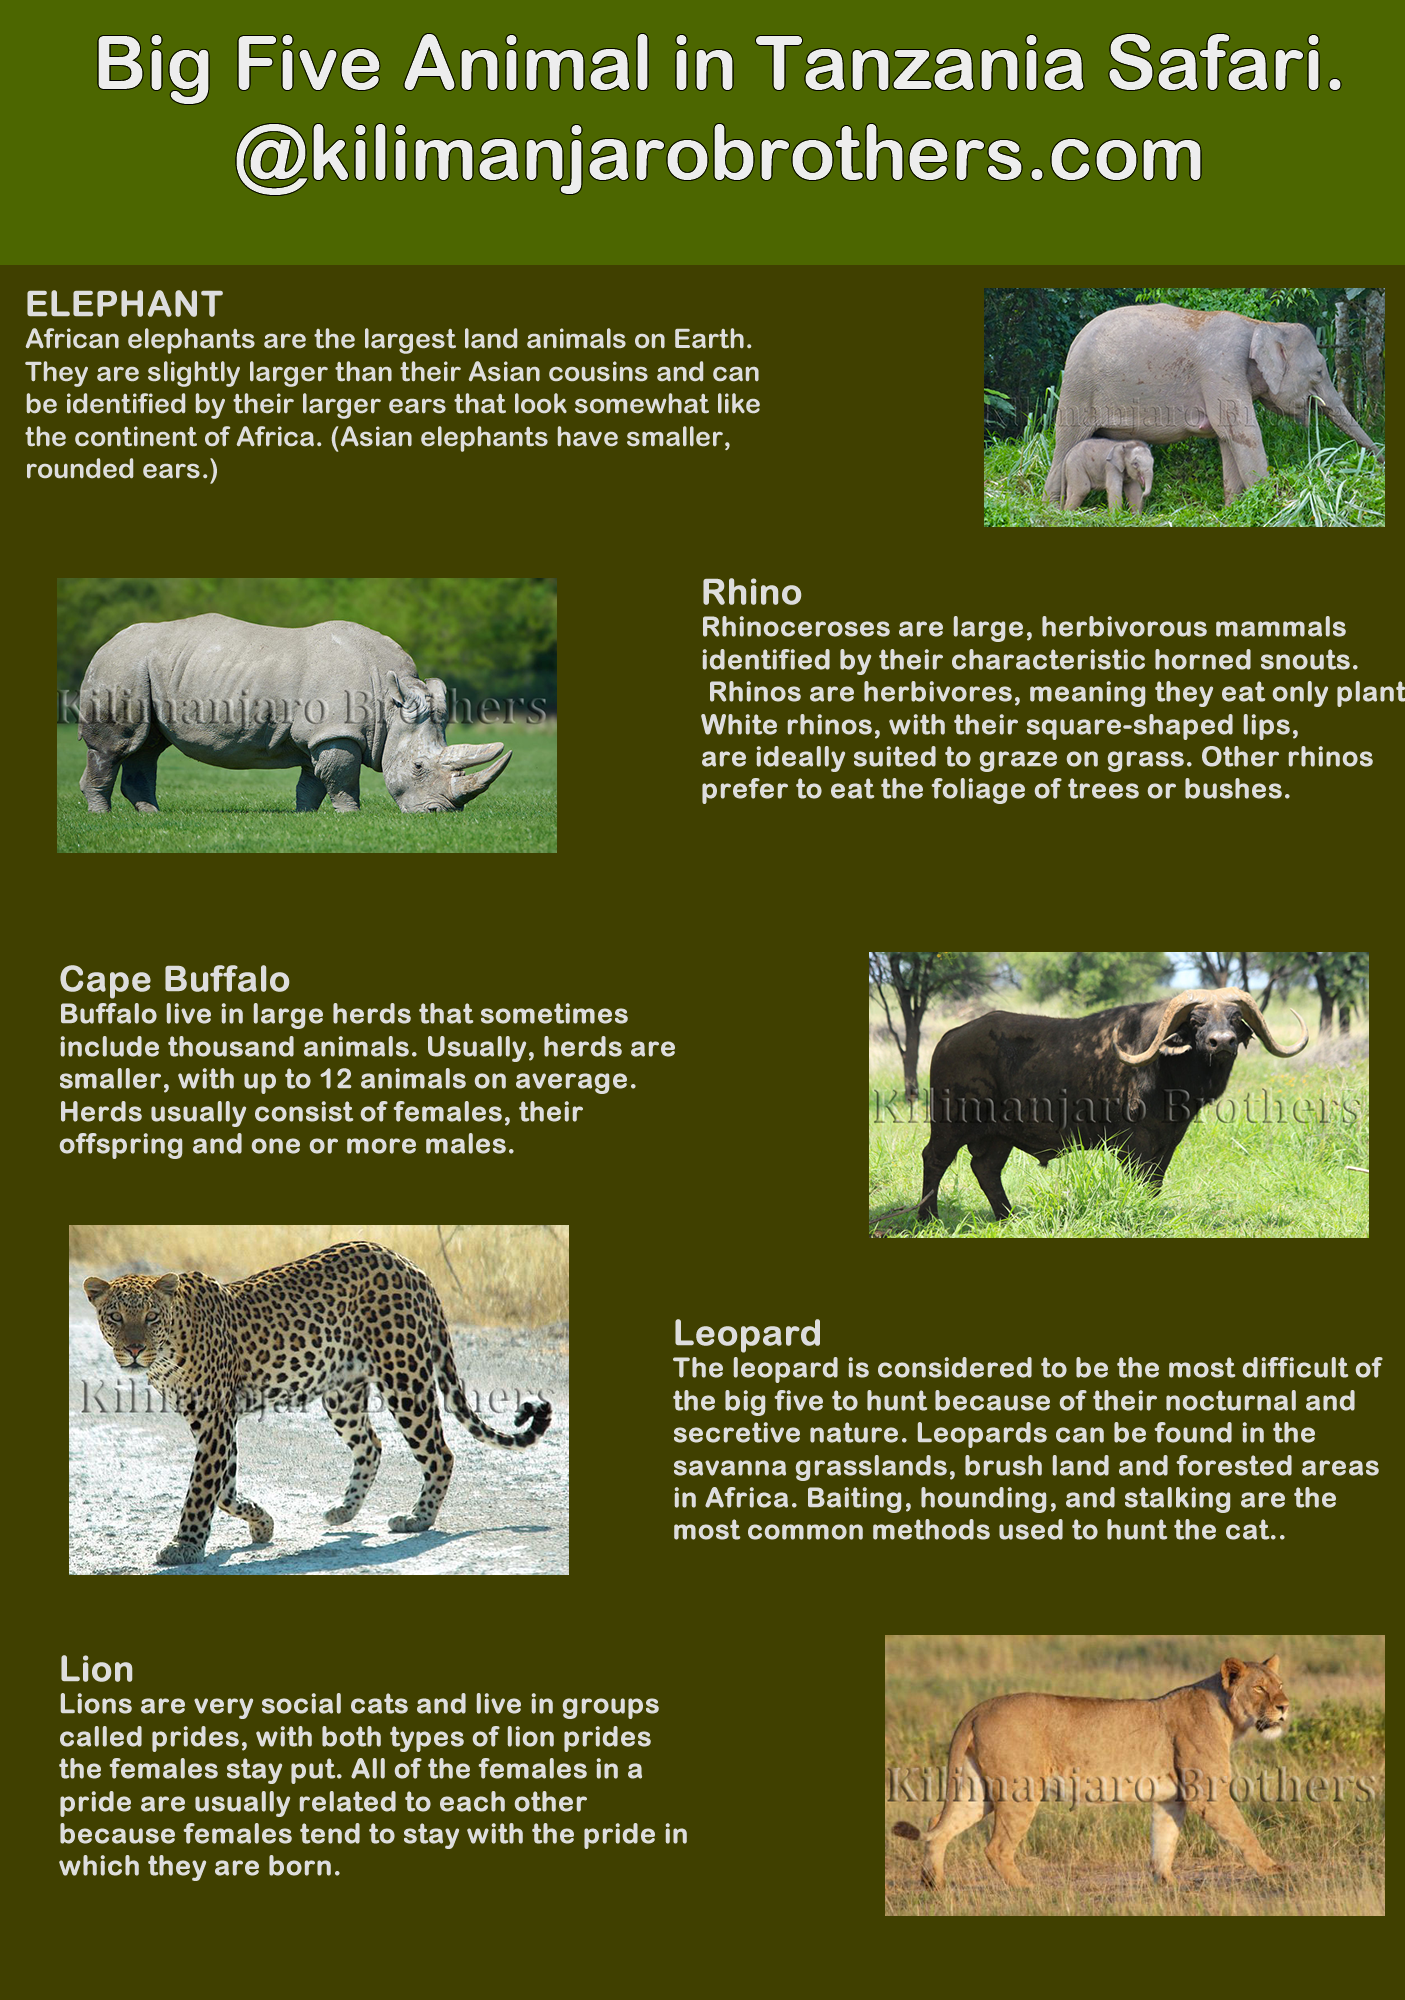 Have you already seen big five animal? The Big Five refers